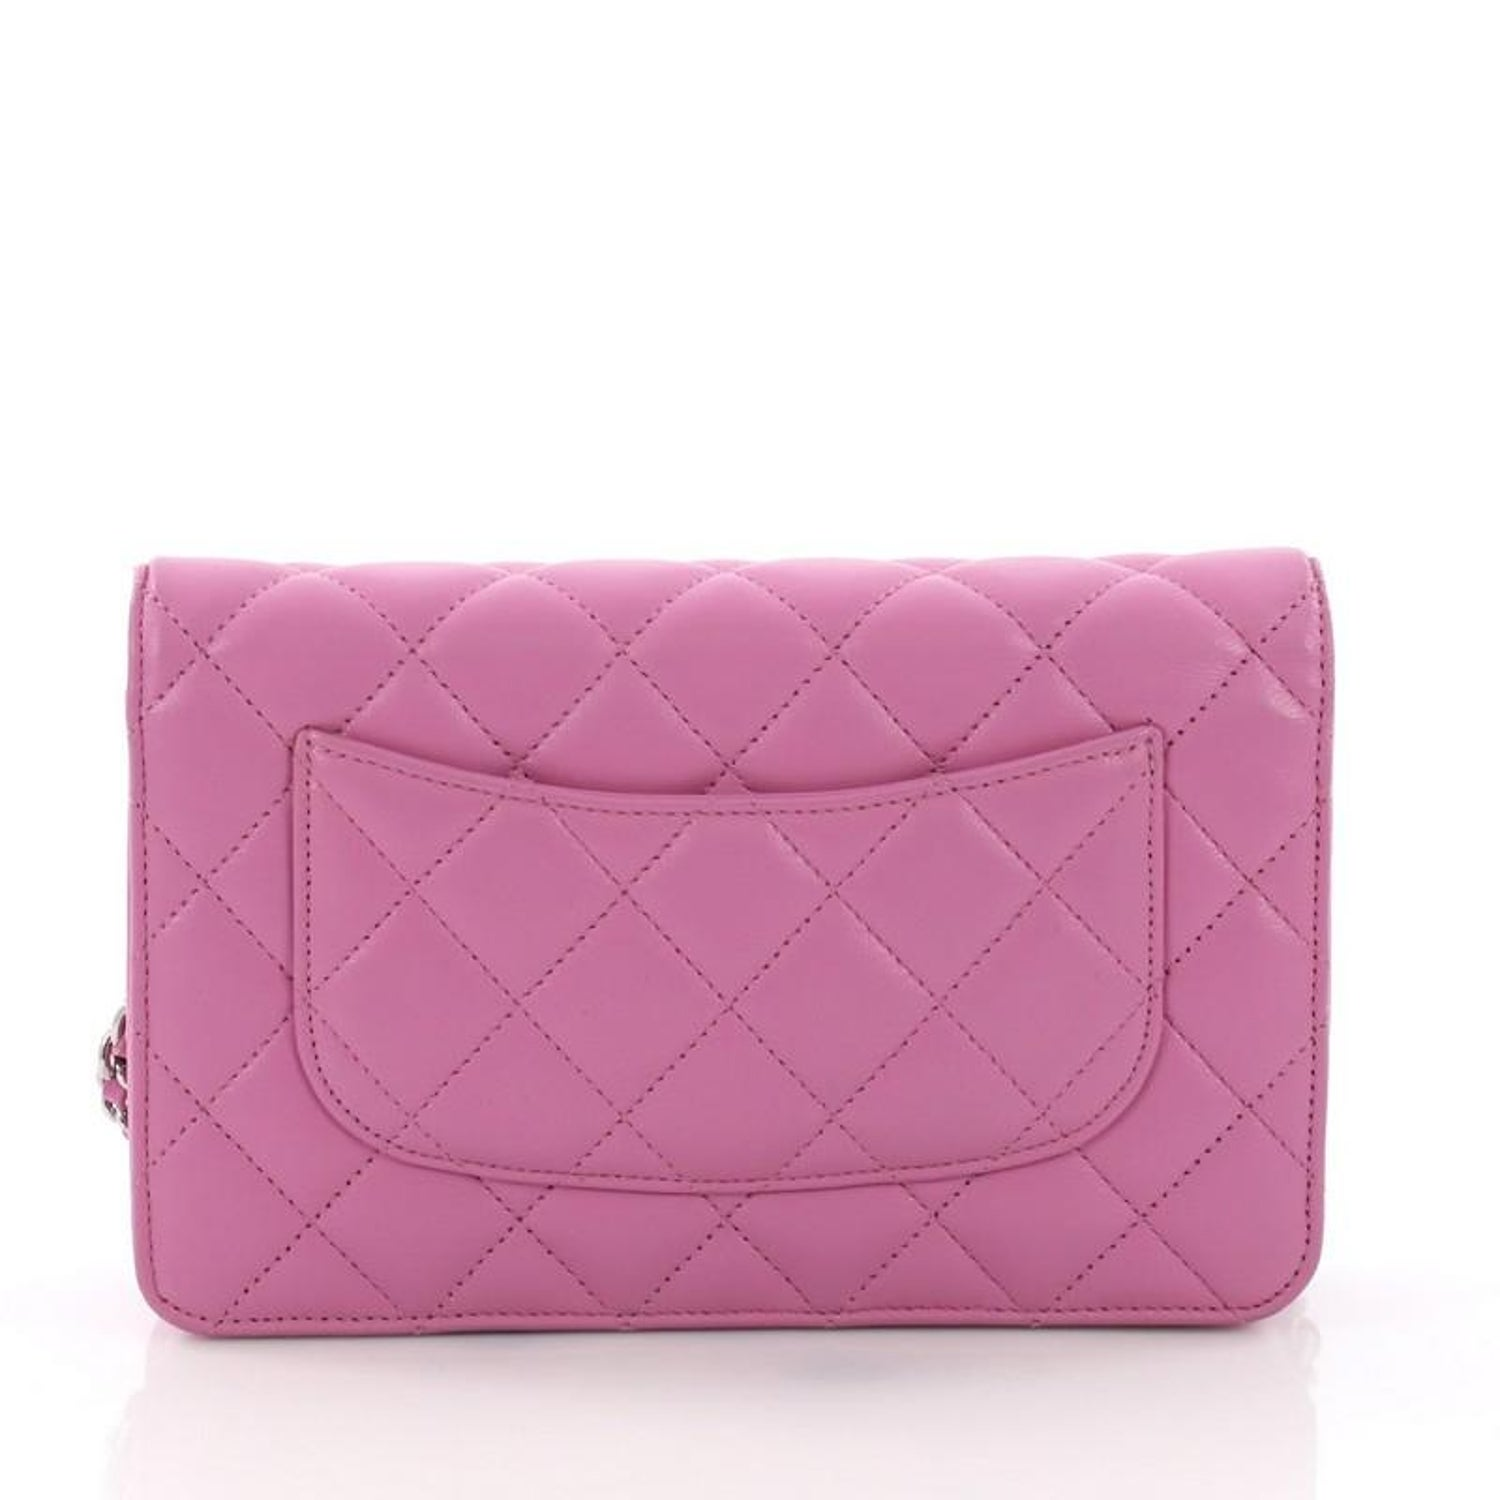 37a52df46ebb2a Chanel Wallet on Chain Quilted Lambskin at 1stdibs